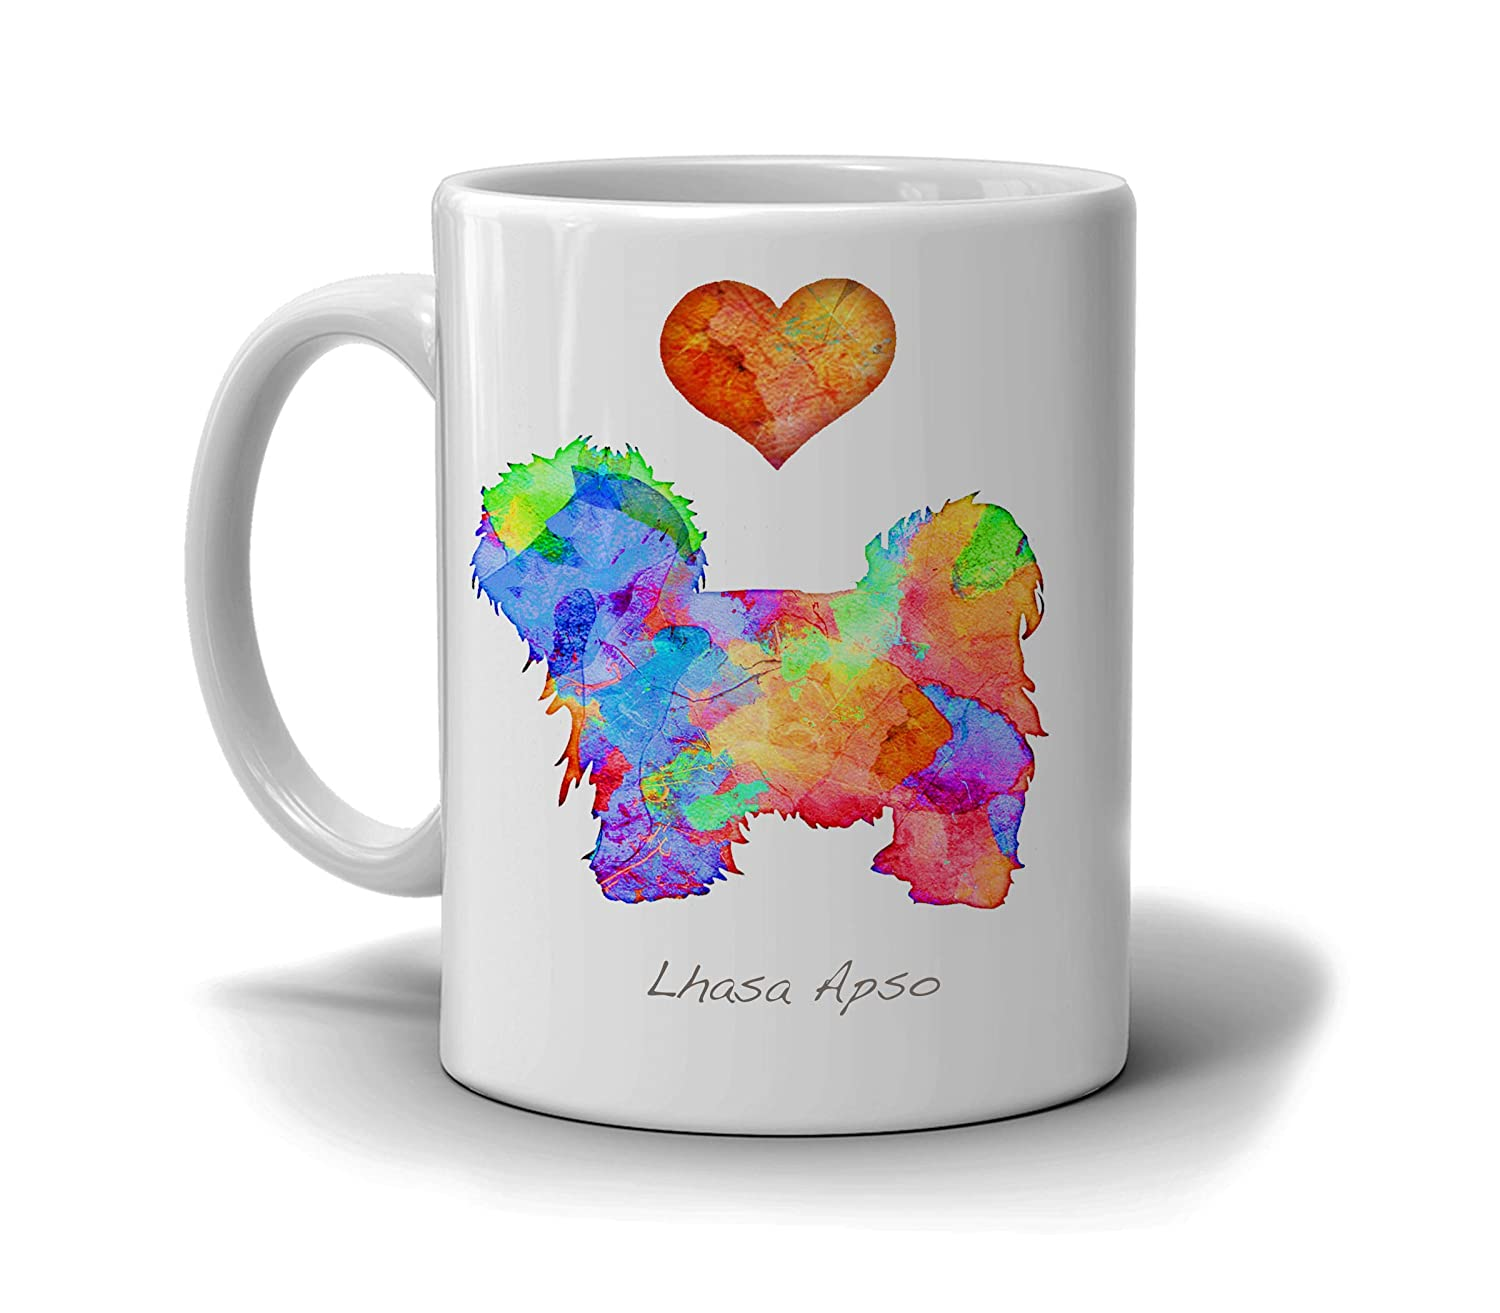 Lhasa Apso Dog Breed Mug by Nam Personalize Dan Direct Max 81% OFF store with Morris